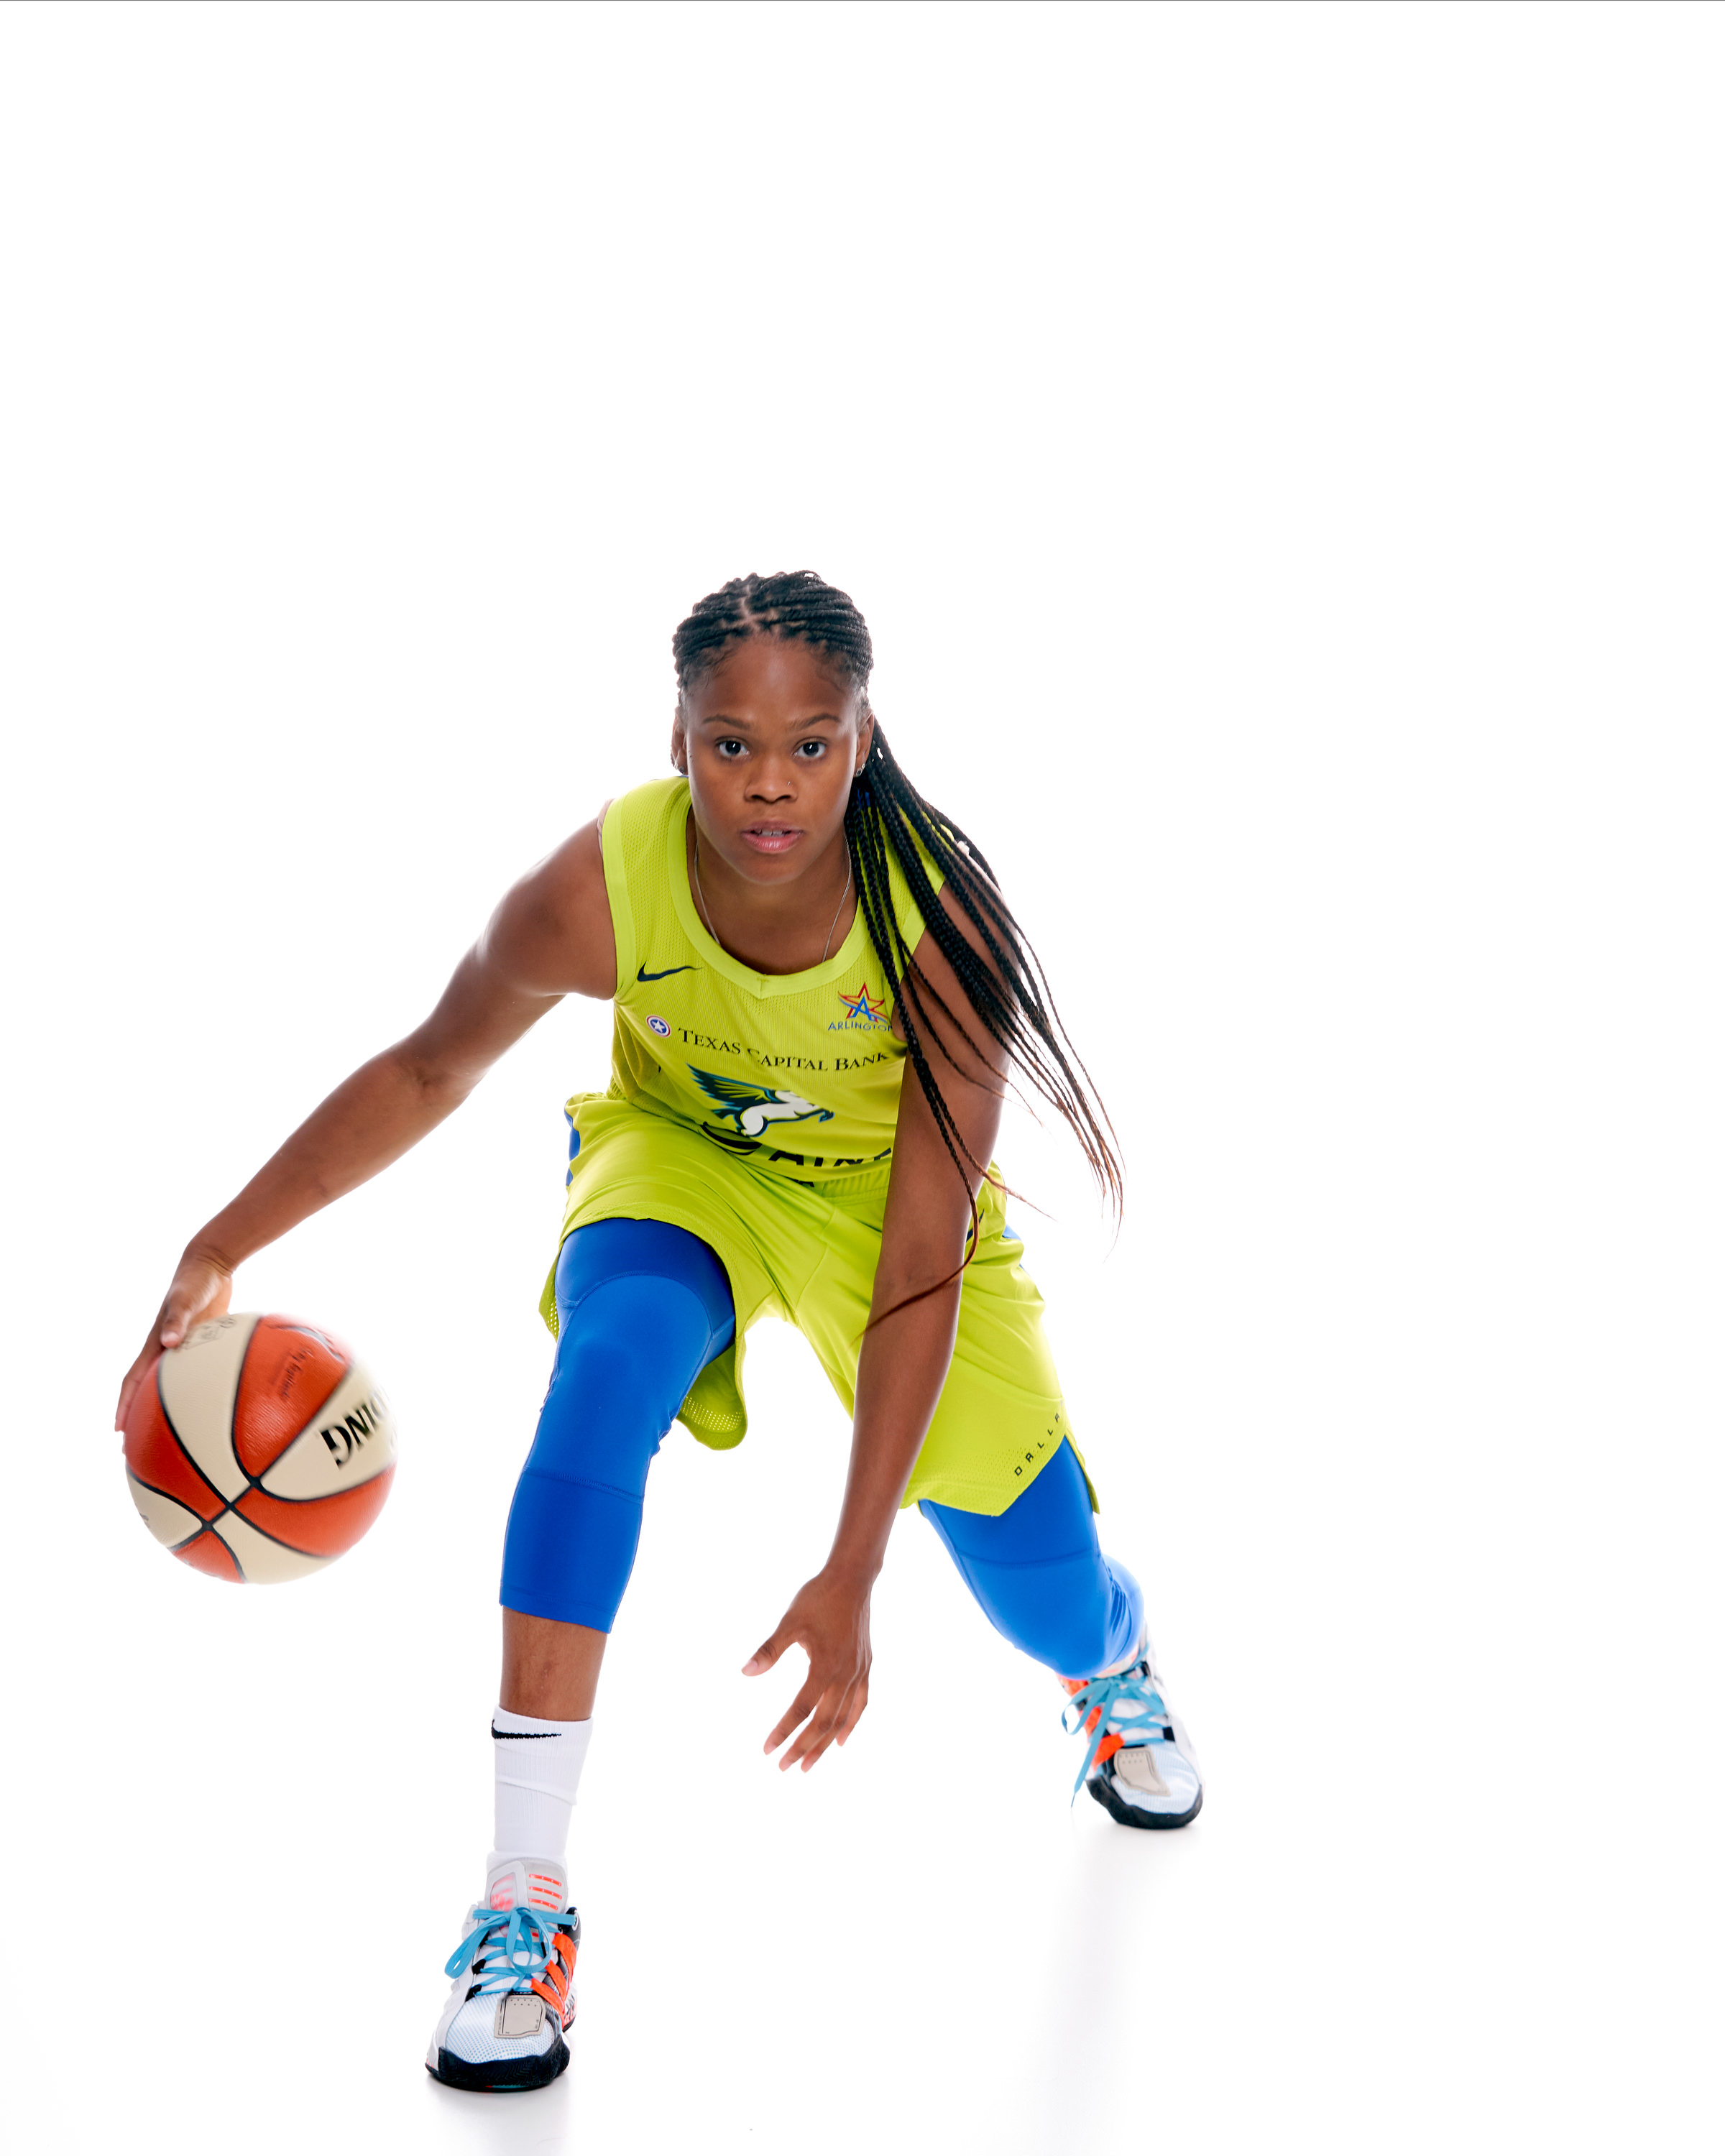 edit_06-26-2020_DallasWings_010351.JPG